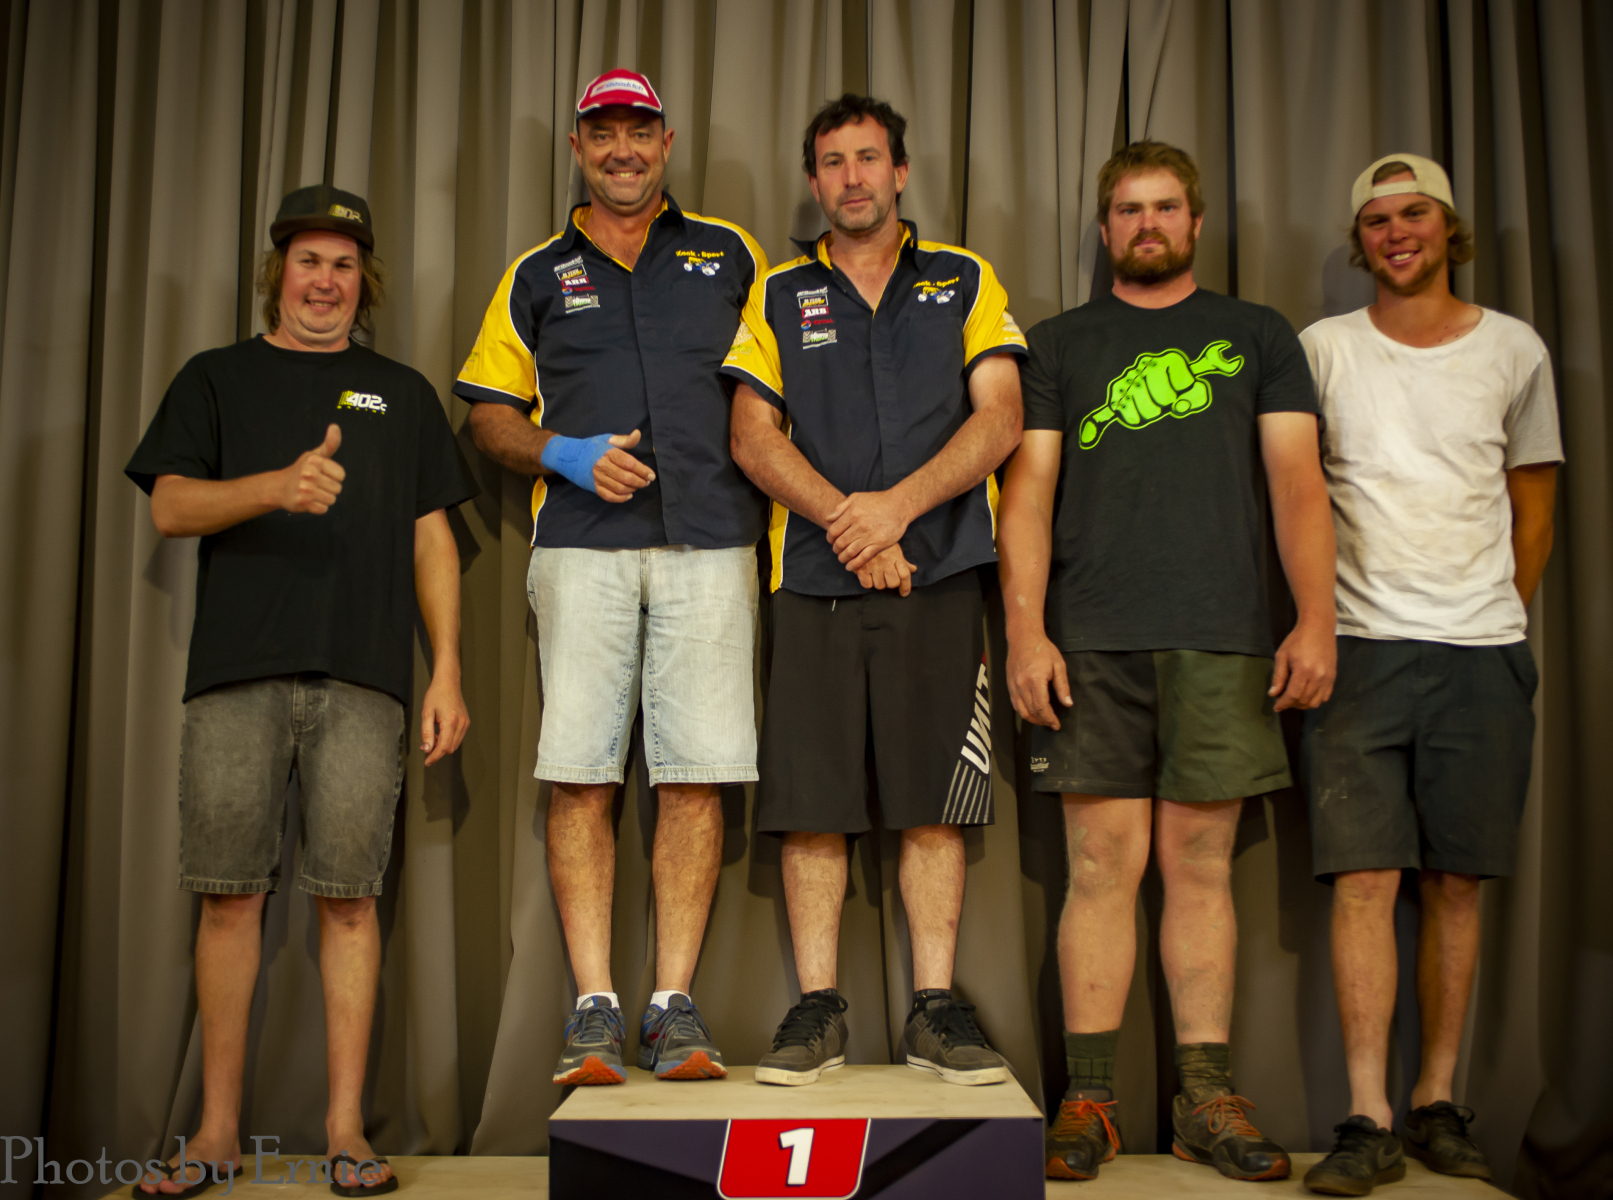 C Class - 2nd Shayne Towers, 1st Nathan Fogden & Mike Gibbons, 3rd Michael Thomsen & Caleb Adlam